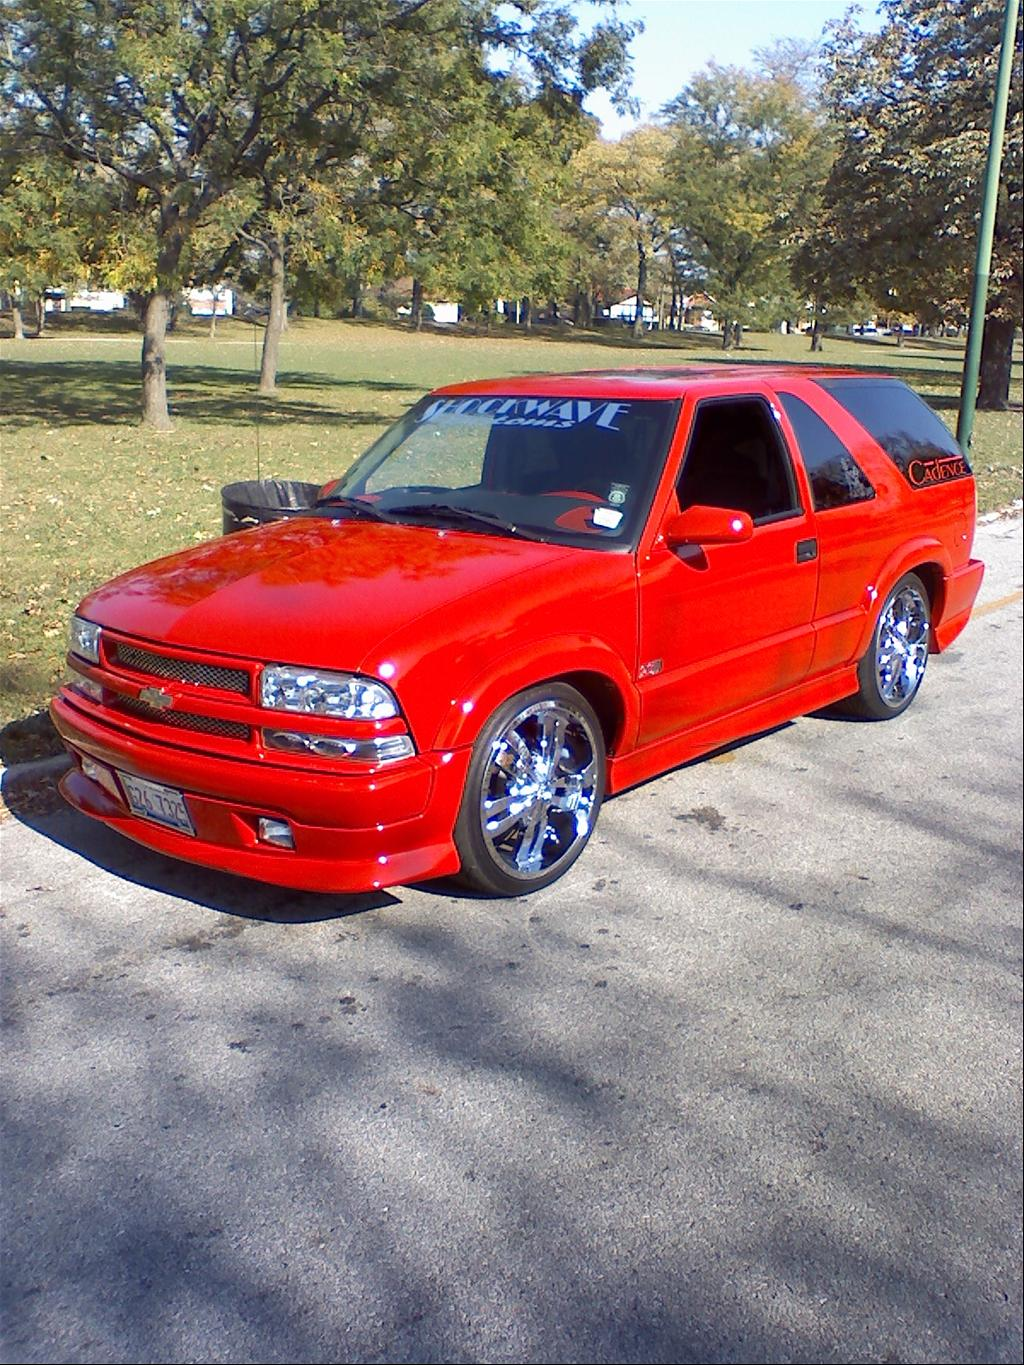 ginuine2 39 s 2001 chevrolet s10 blazer in chicago il. Black Bedroom Furniture Sets. Home Design Ideas